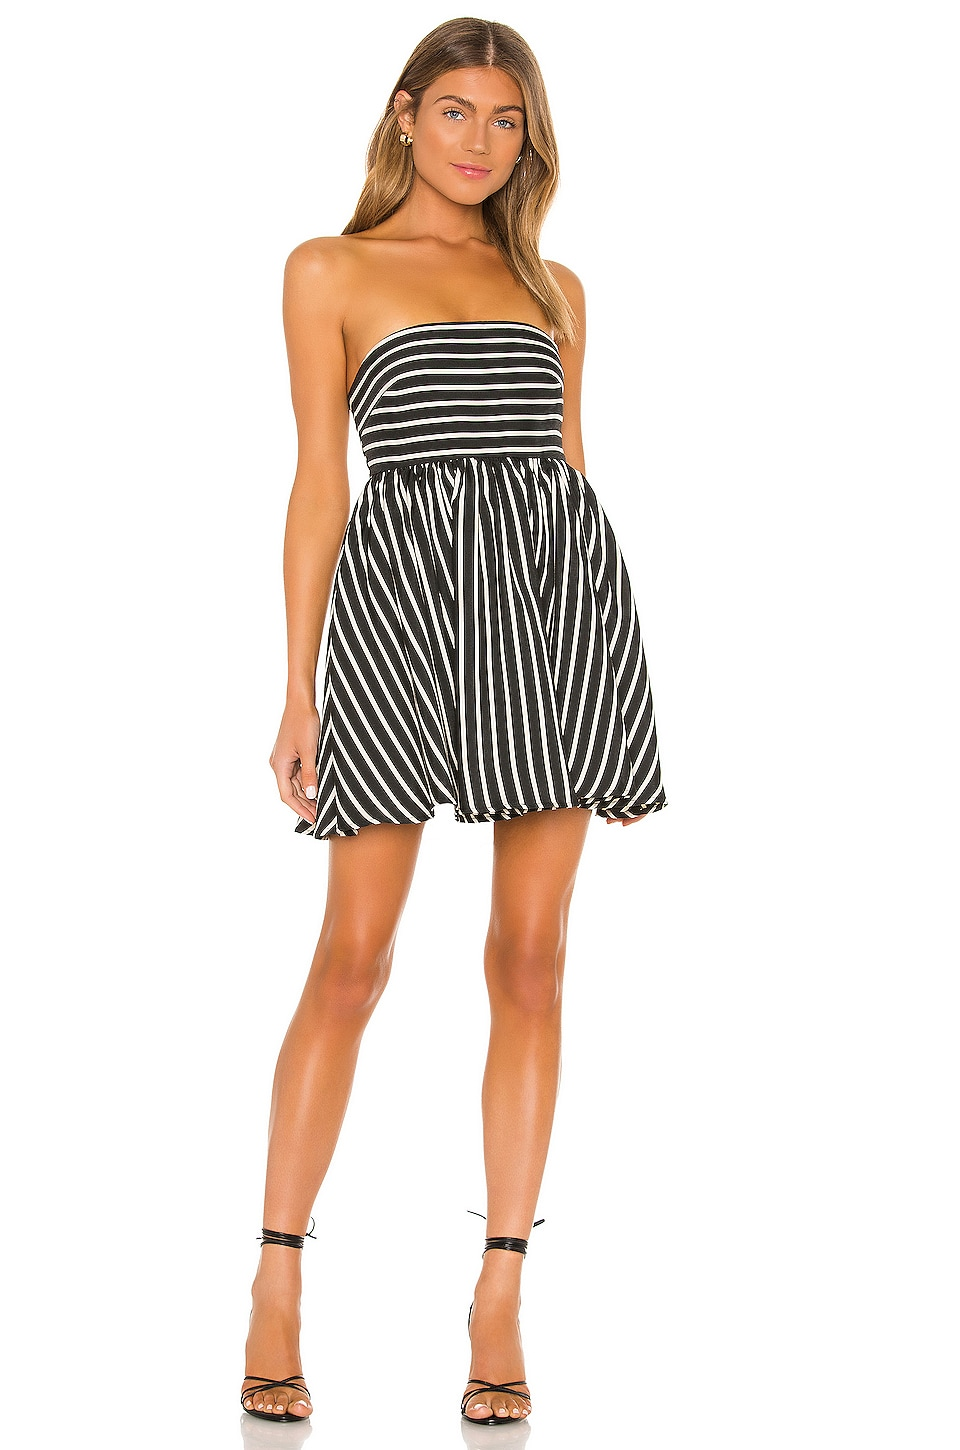 Lovers + Friends Wyatt Mini Dress in Black & Ivory